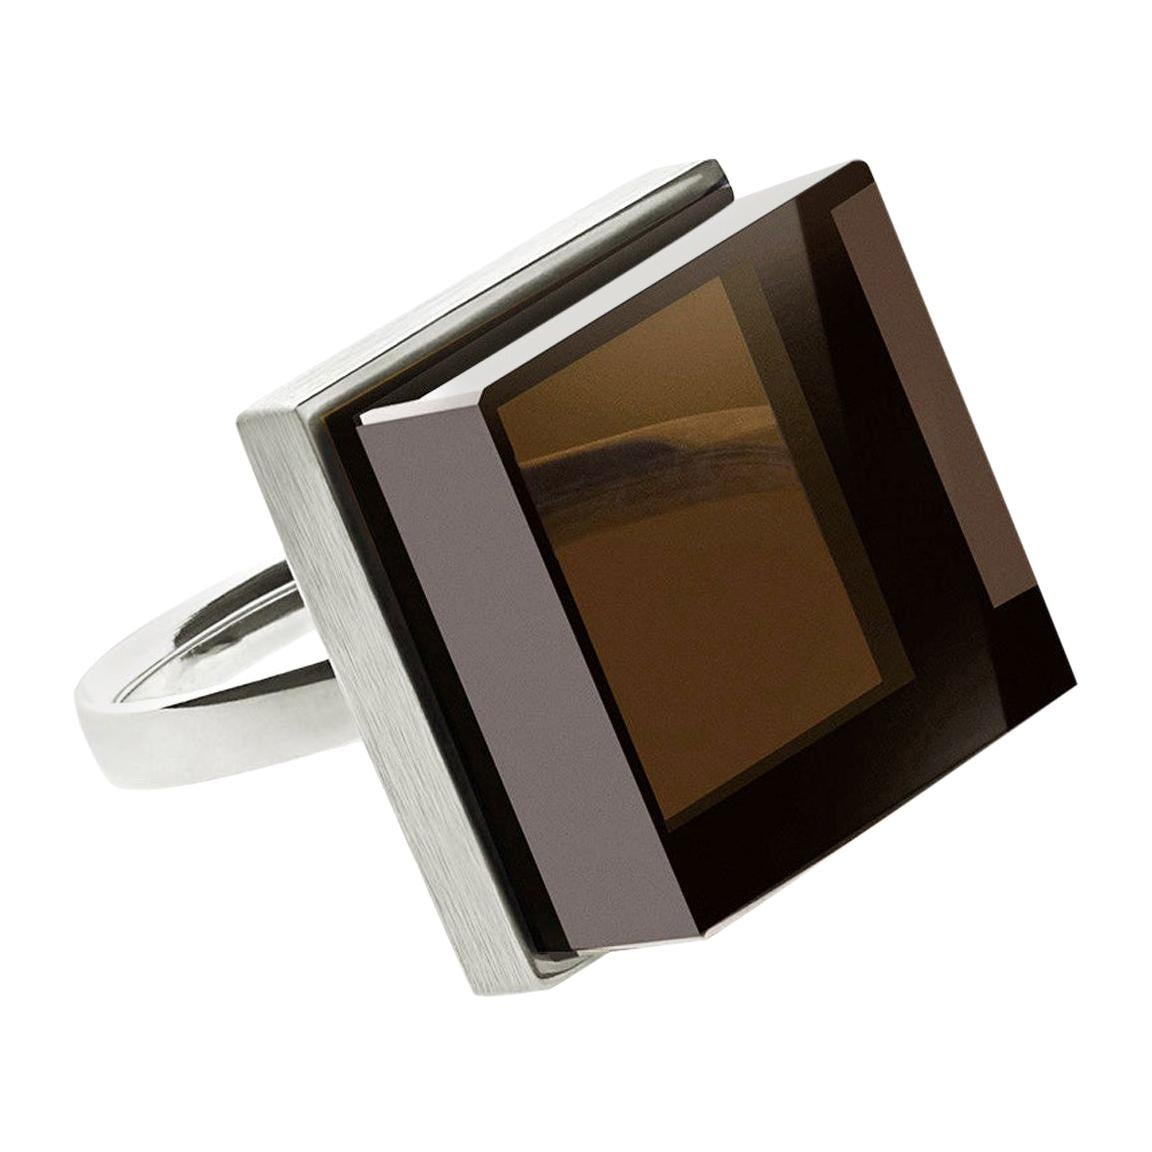 14 Karat White Gold Men Art Deco Style Ink Ring with Smoky Quartz by the Artist